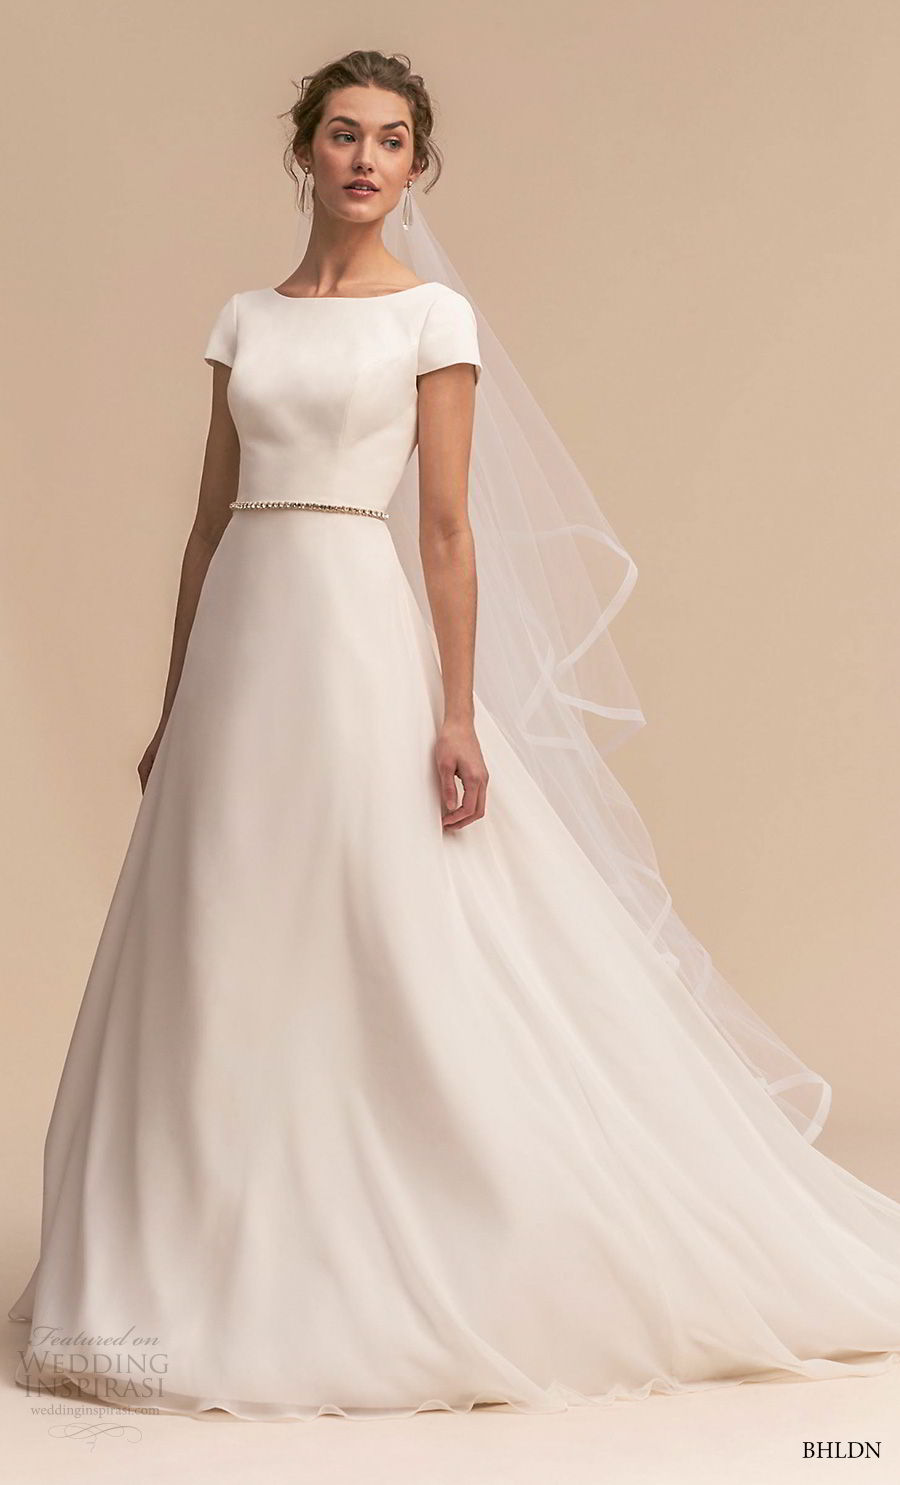 bhldn 2018 whispers bridal short sleeve bateau neck simple clean elegant classic a line wedding dress open back chapel train (10) mv.